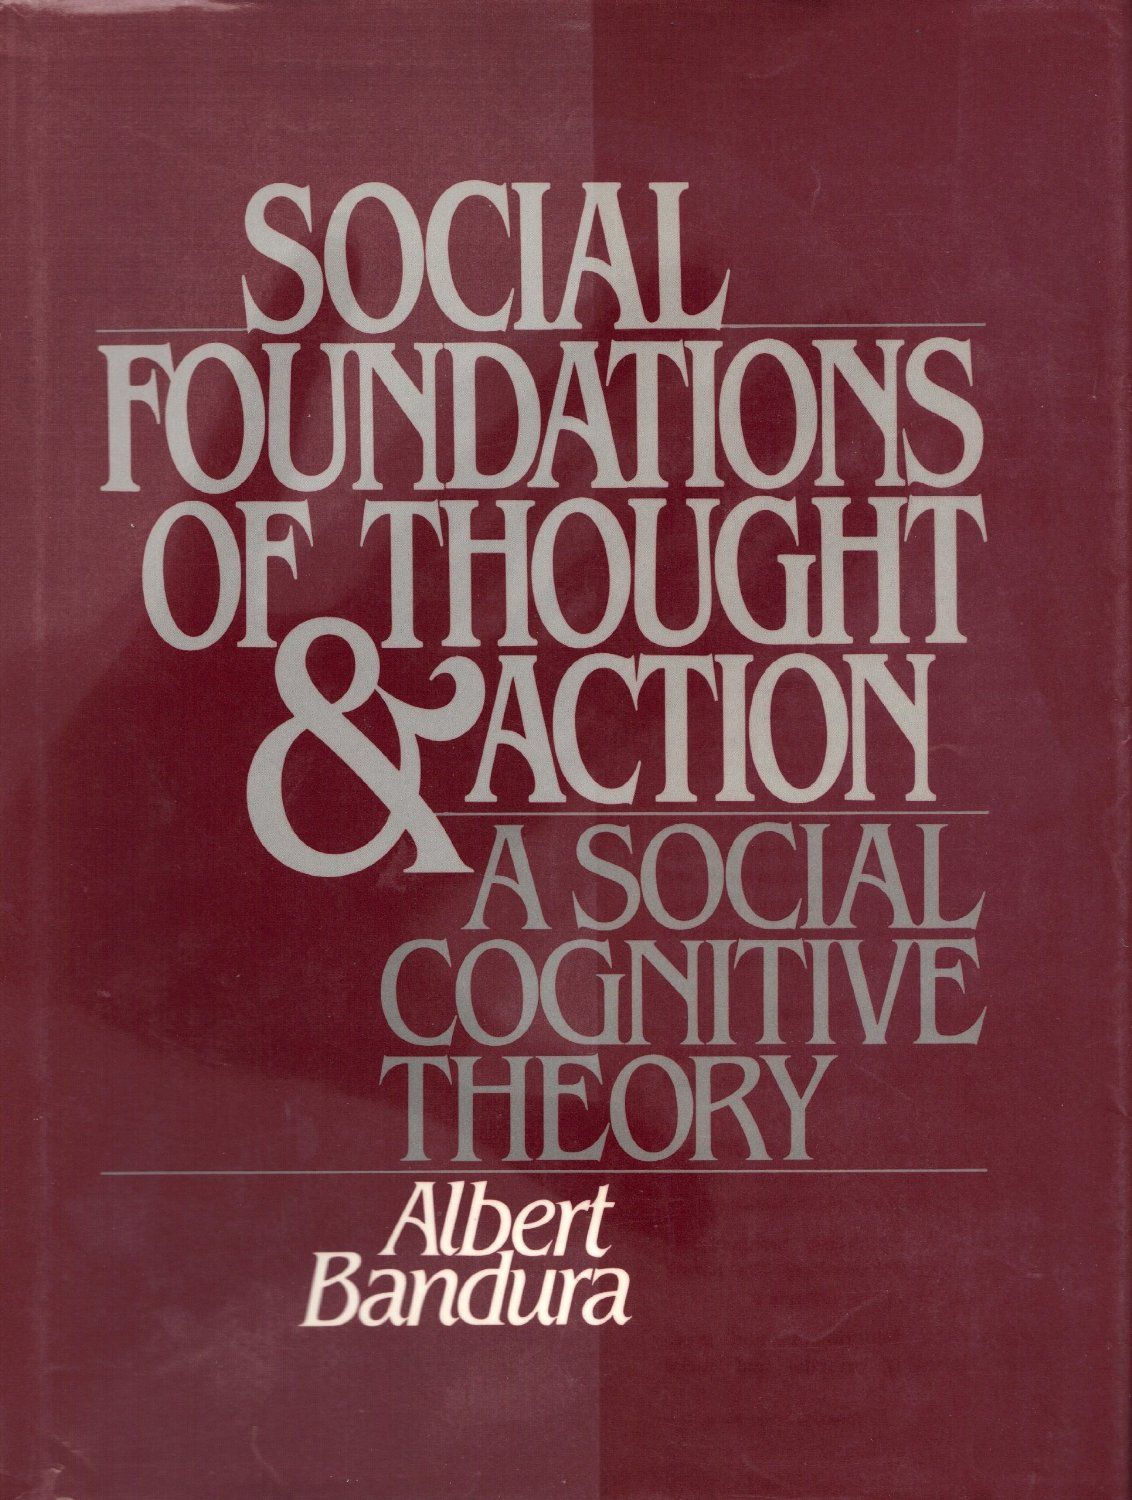 Libros De Psicologia Social Psychology Dr Albert Bandura Resources Psychology